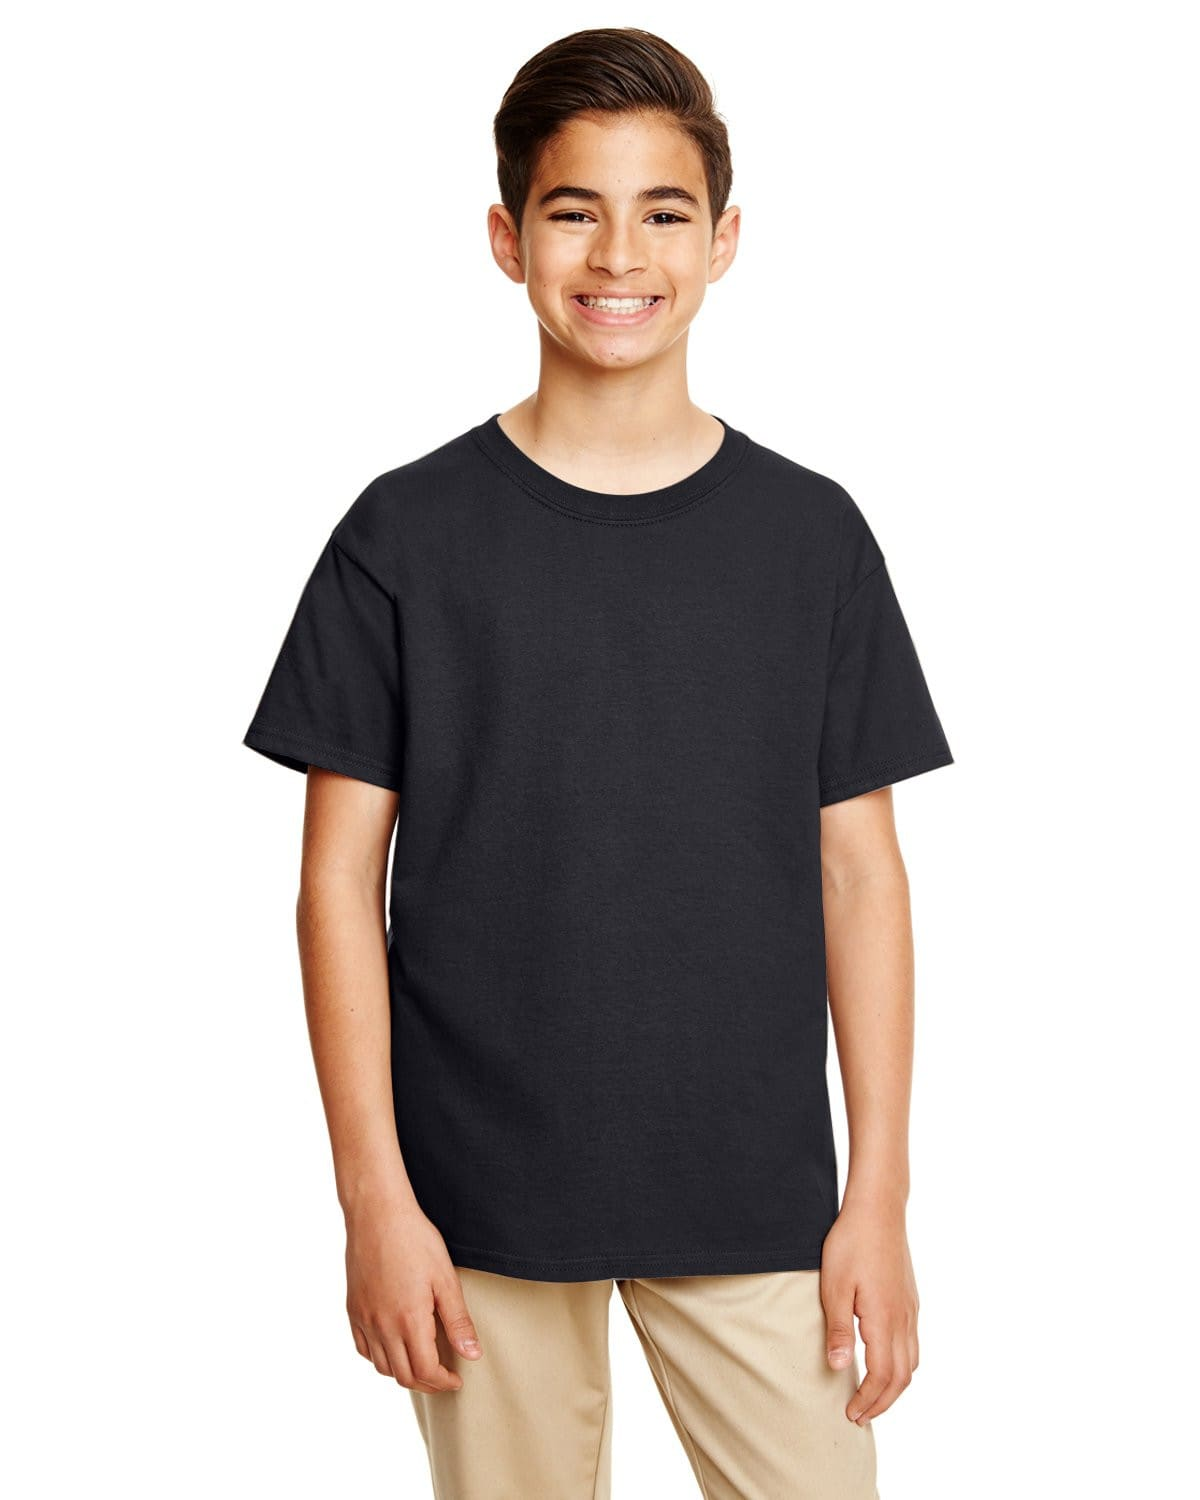 g645b-youth-softstyle-4-5-oz-t-shirt-xsmall-large-XSmall-BLACK-Oasispromos